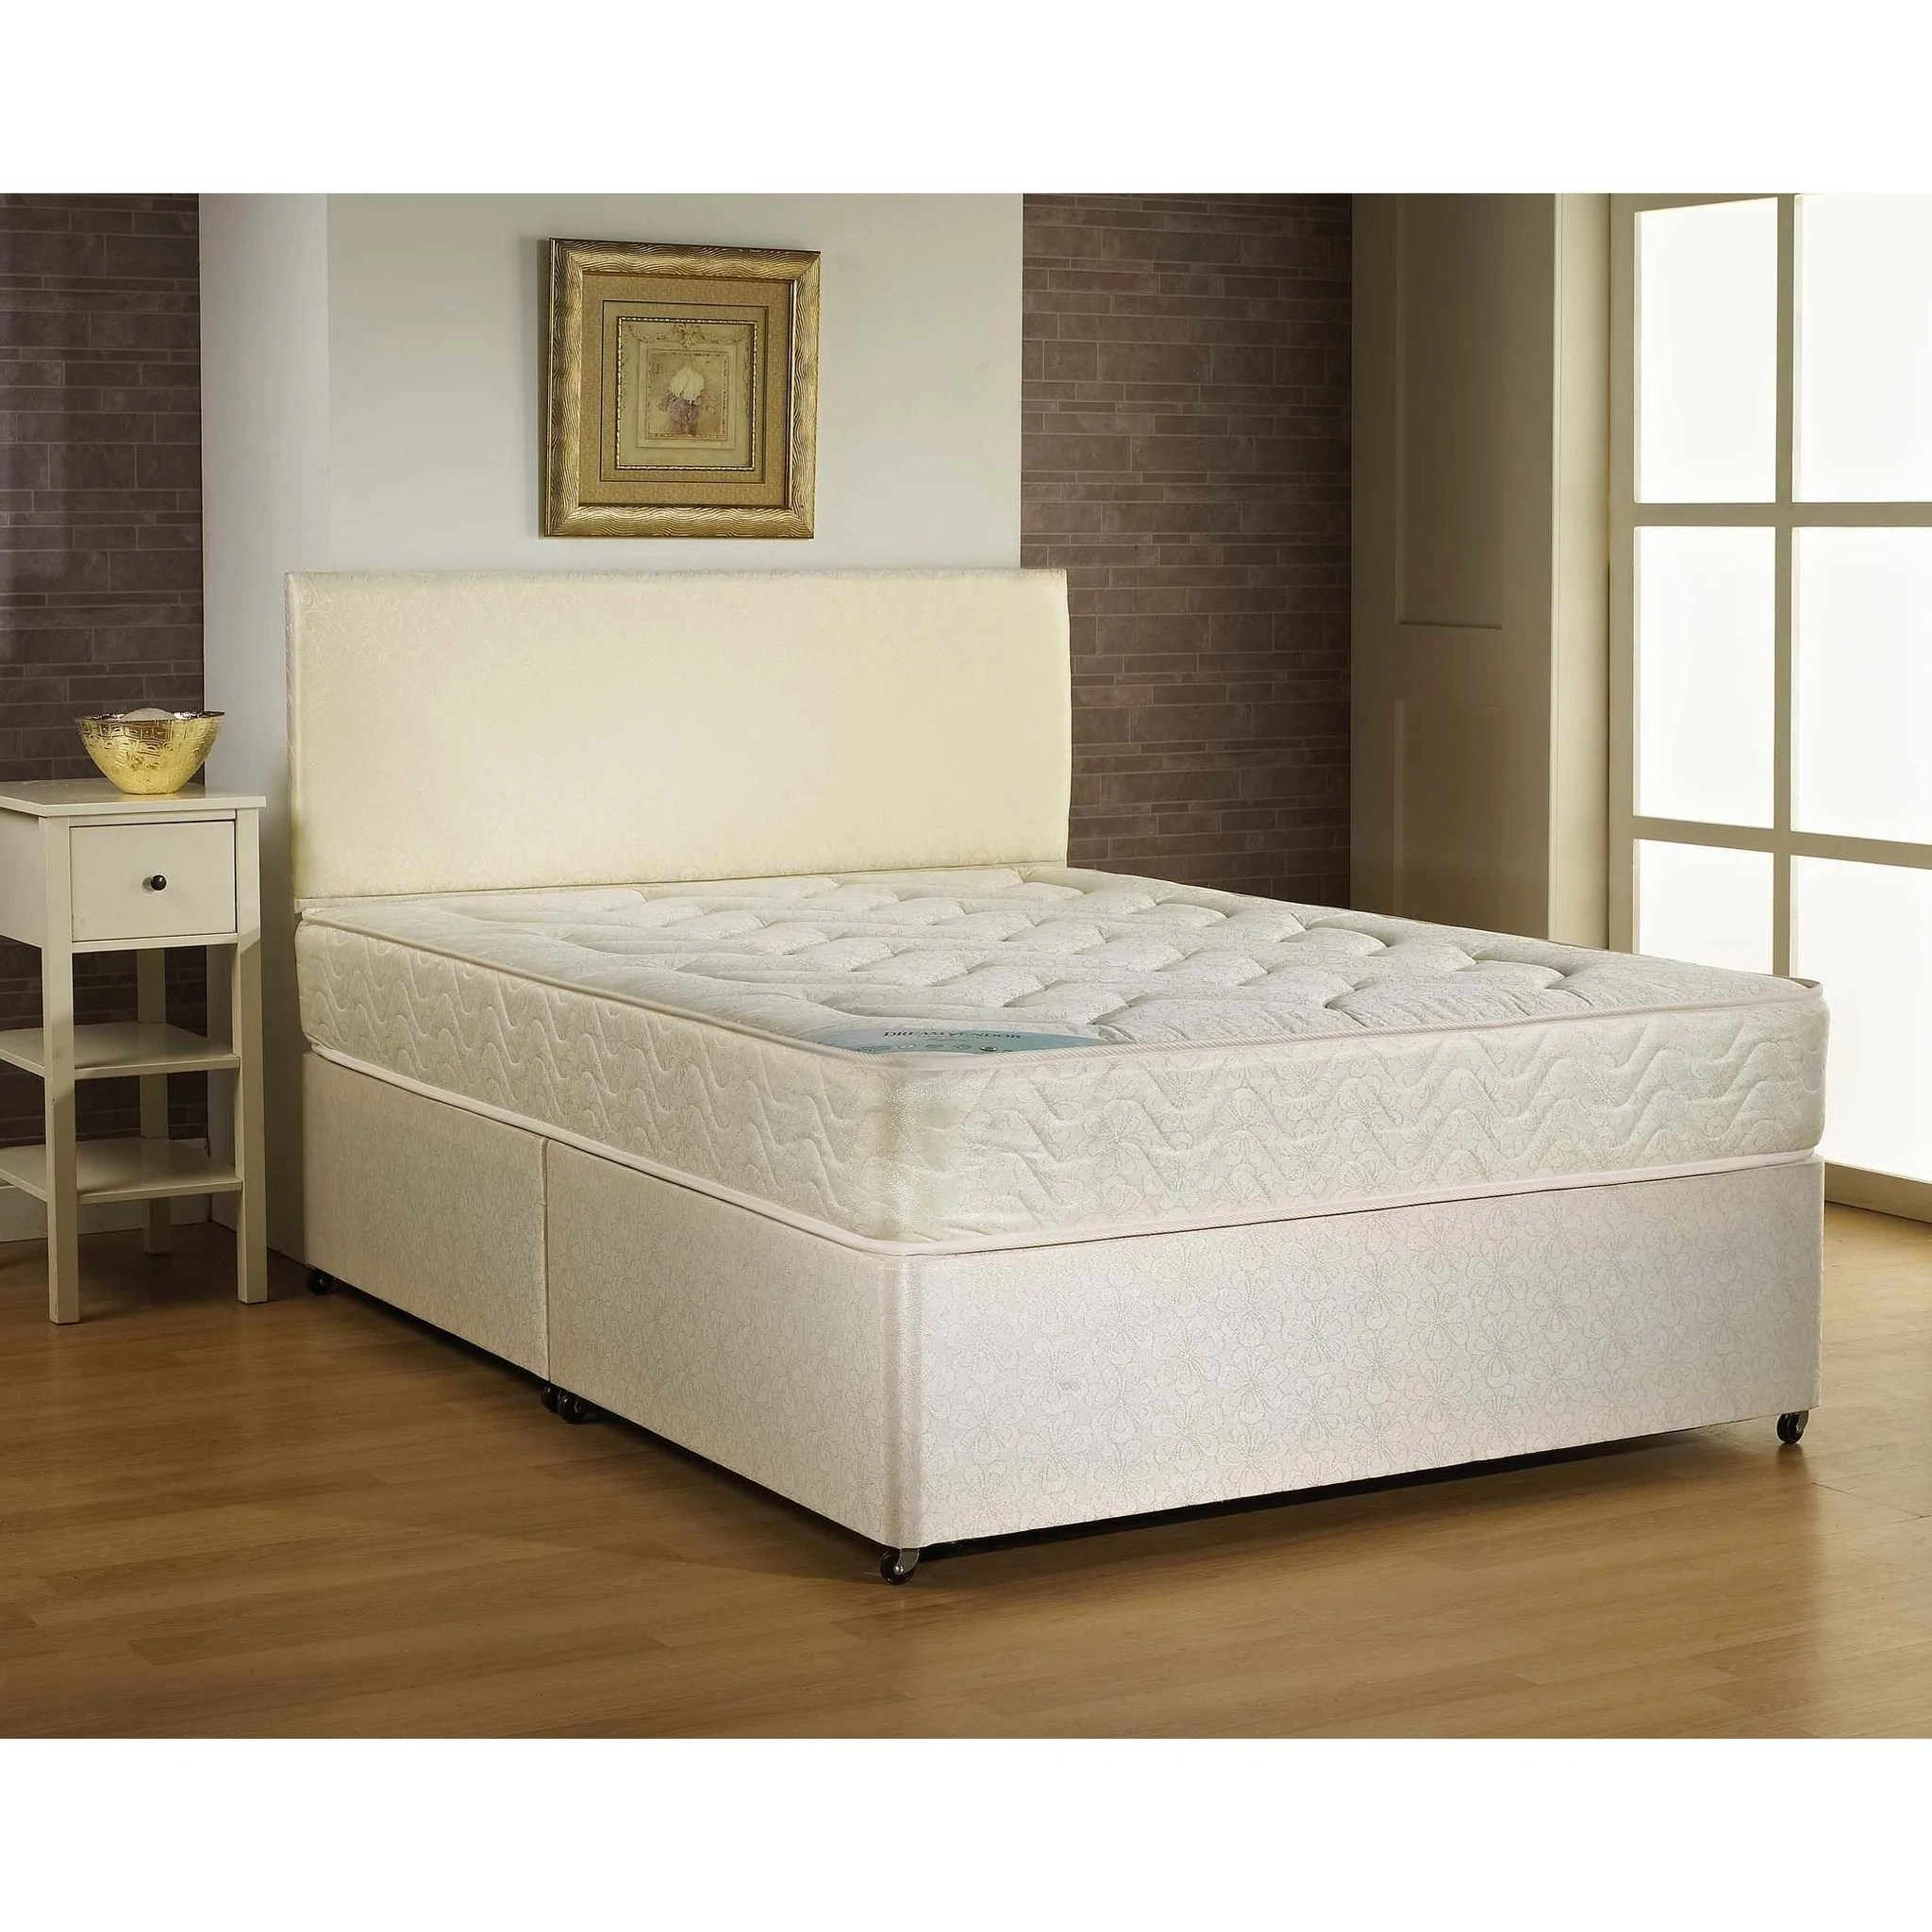 Divan Beds Cheap Oxford Single Divan Bed Sure Sleep Beds